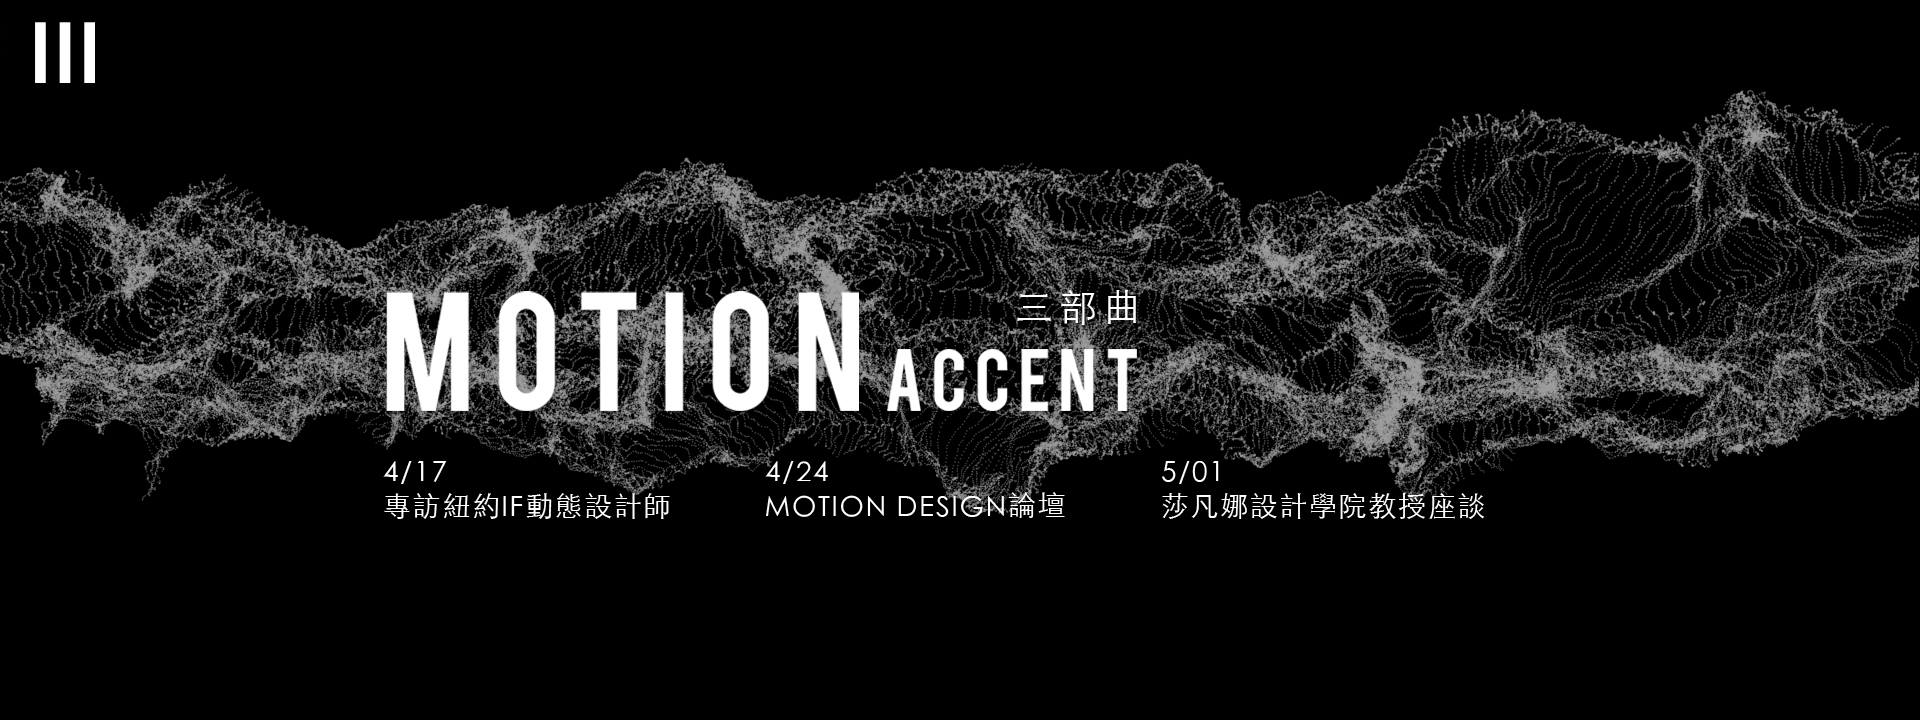 Accent_motion101_2_02.jpg